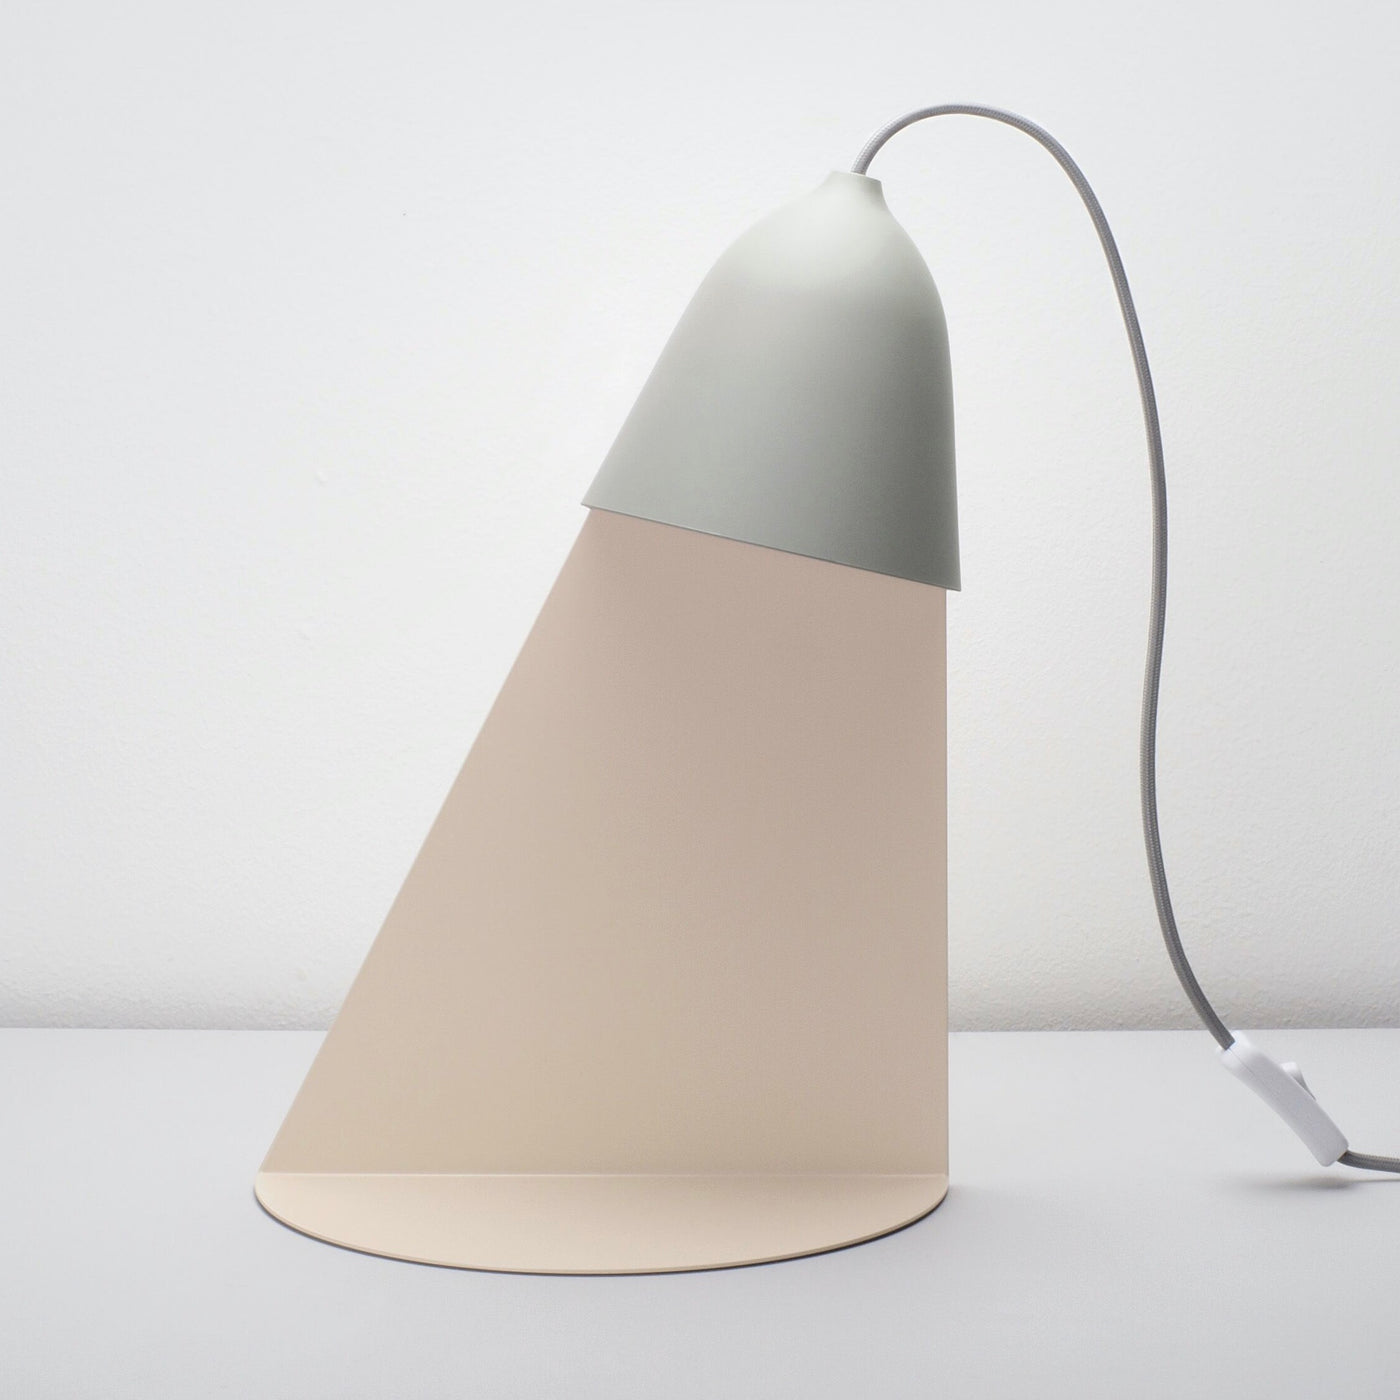 Light Shelf wandlamp | tafellamp